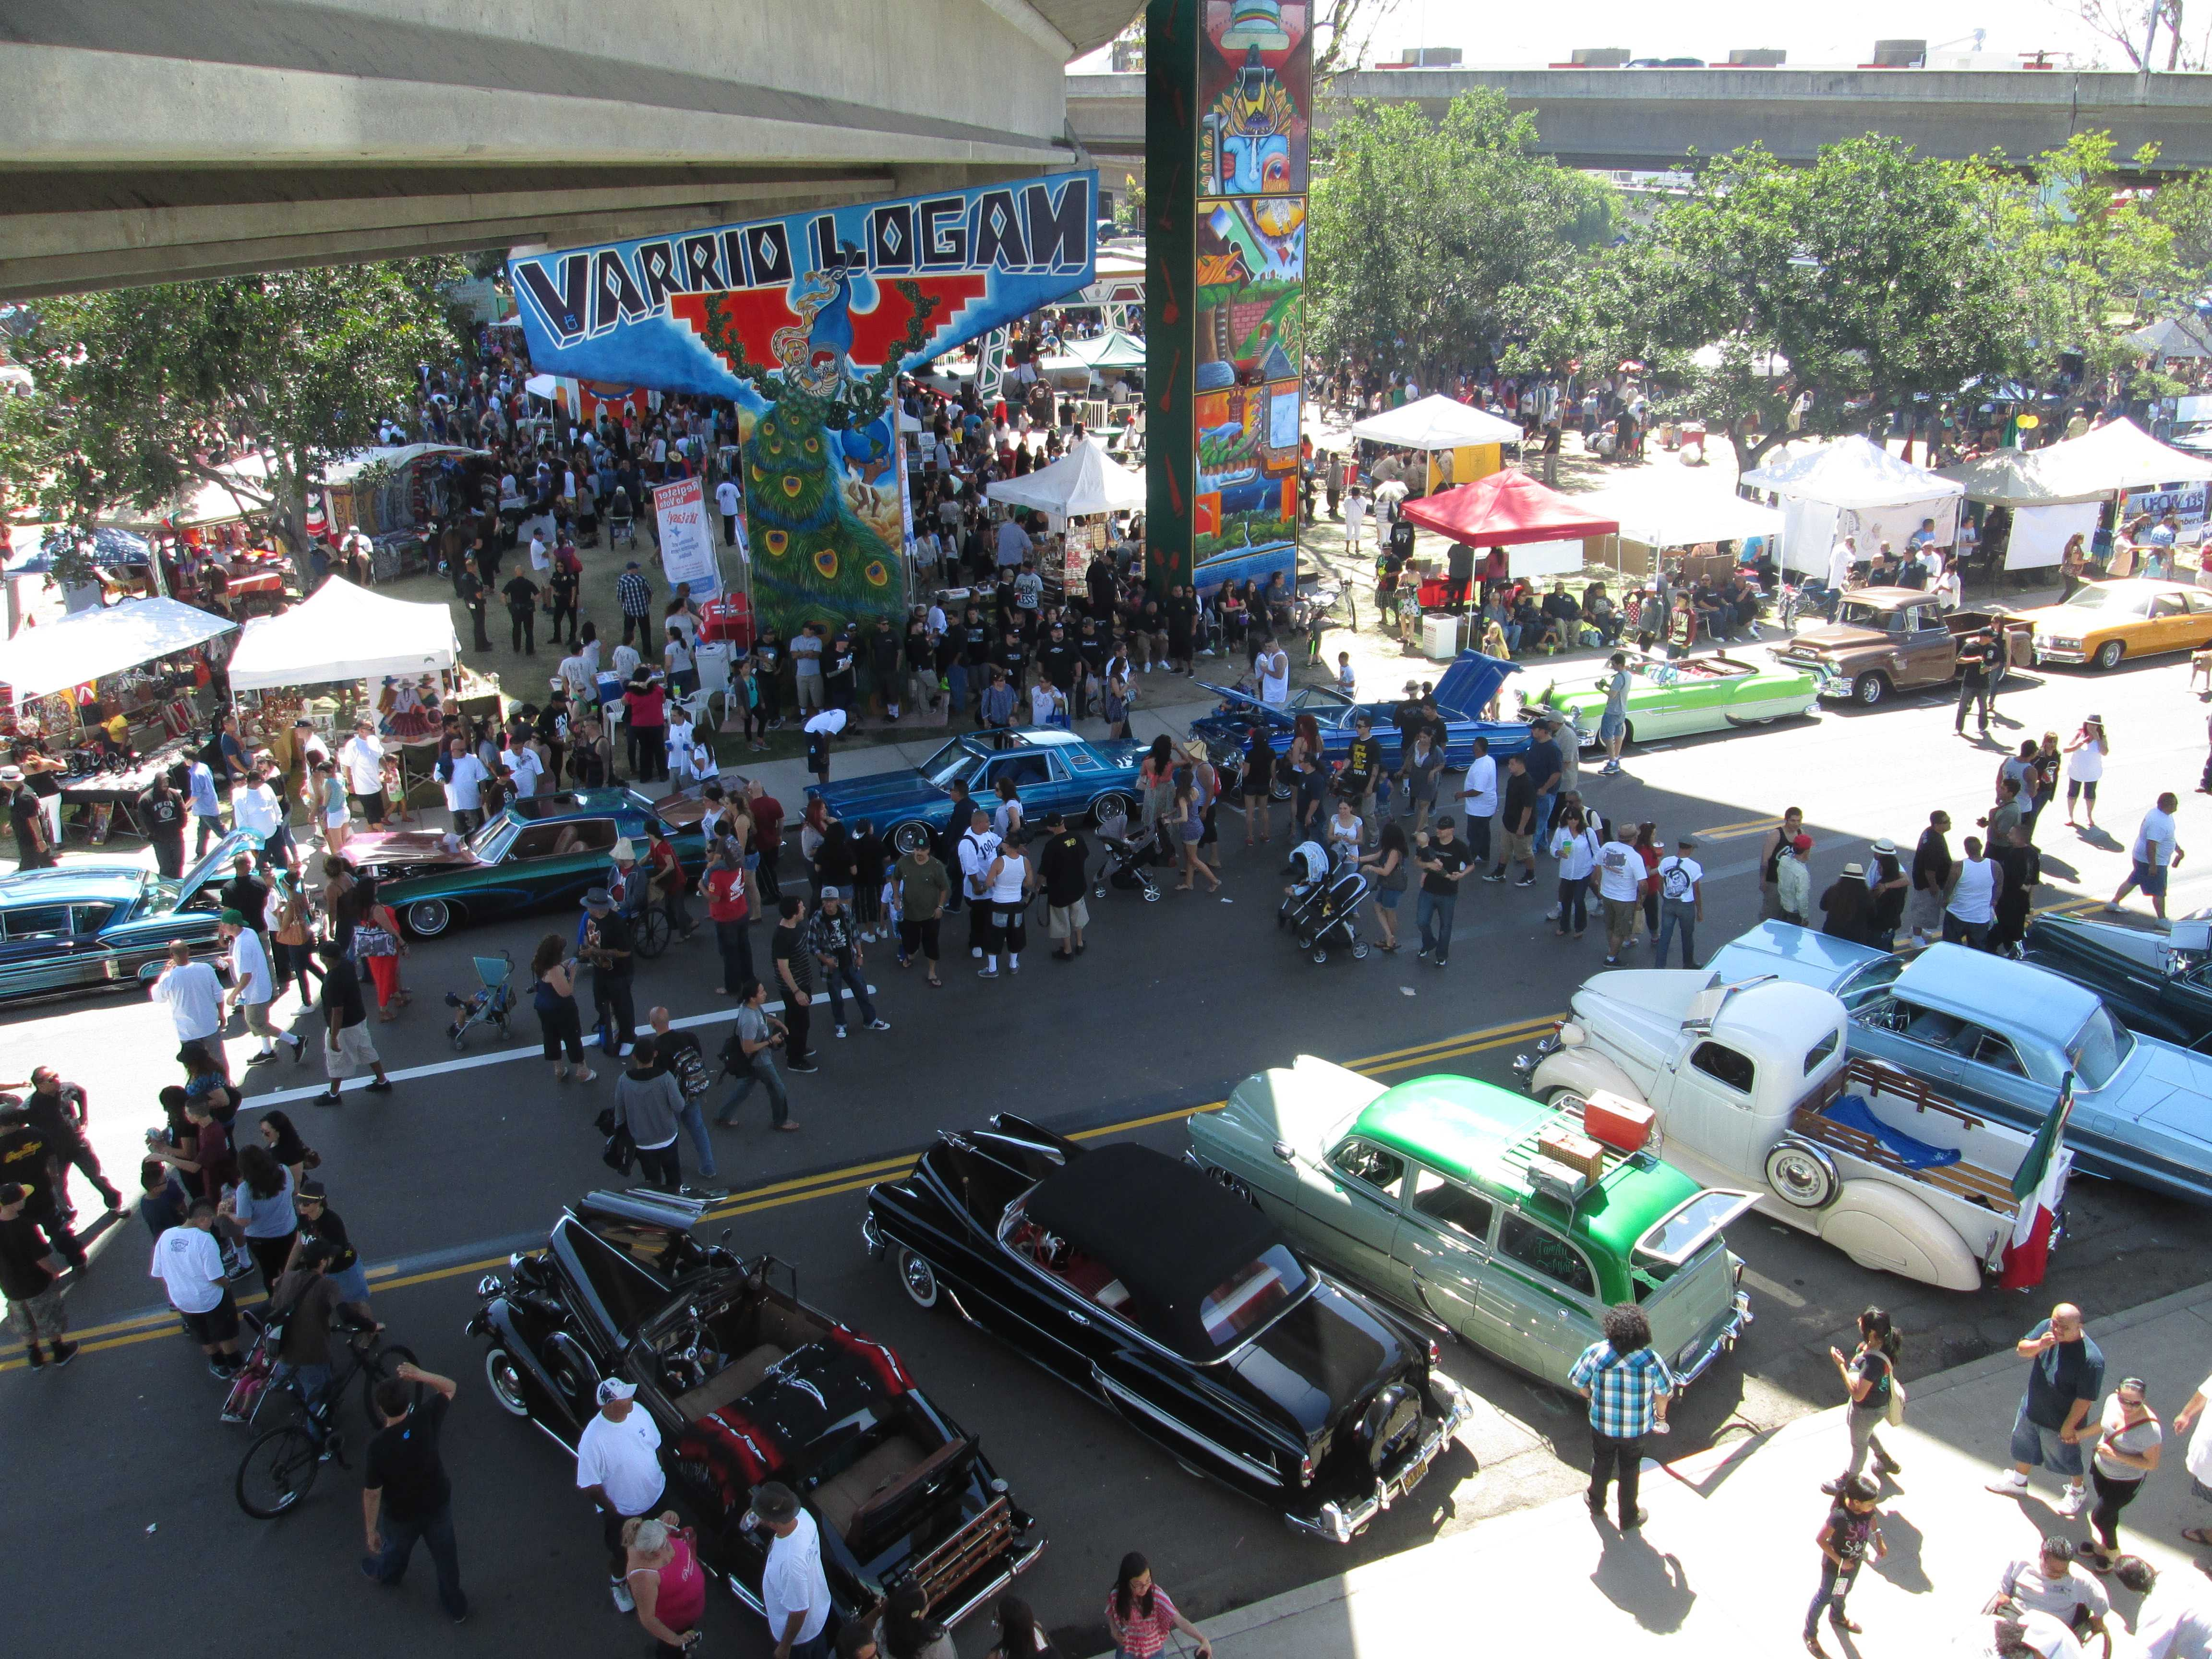 Lowrider car show at the 43rd anniversary of Chicano Park.